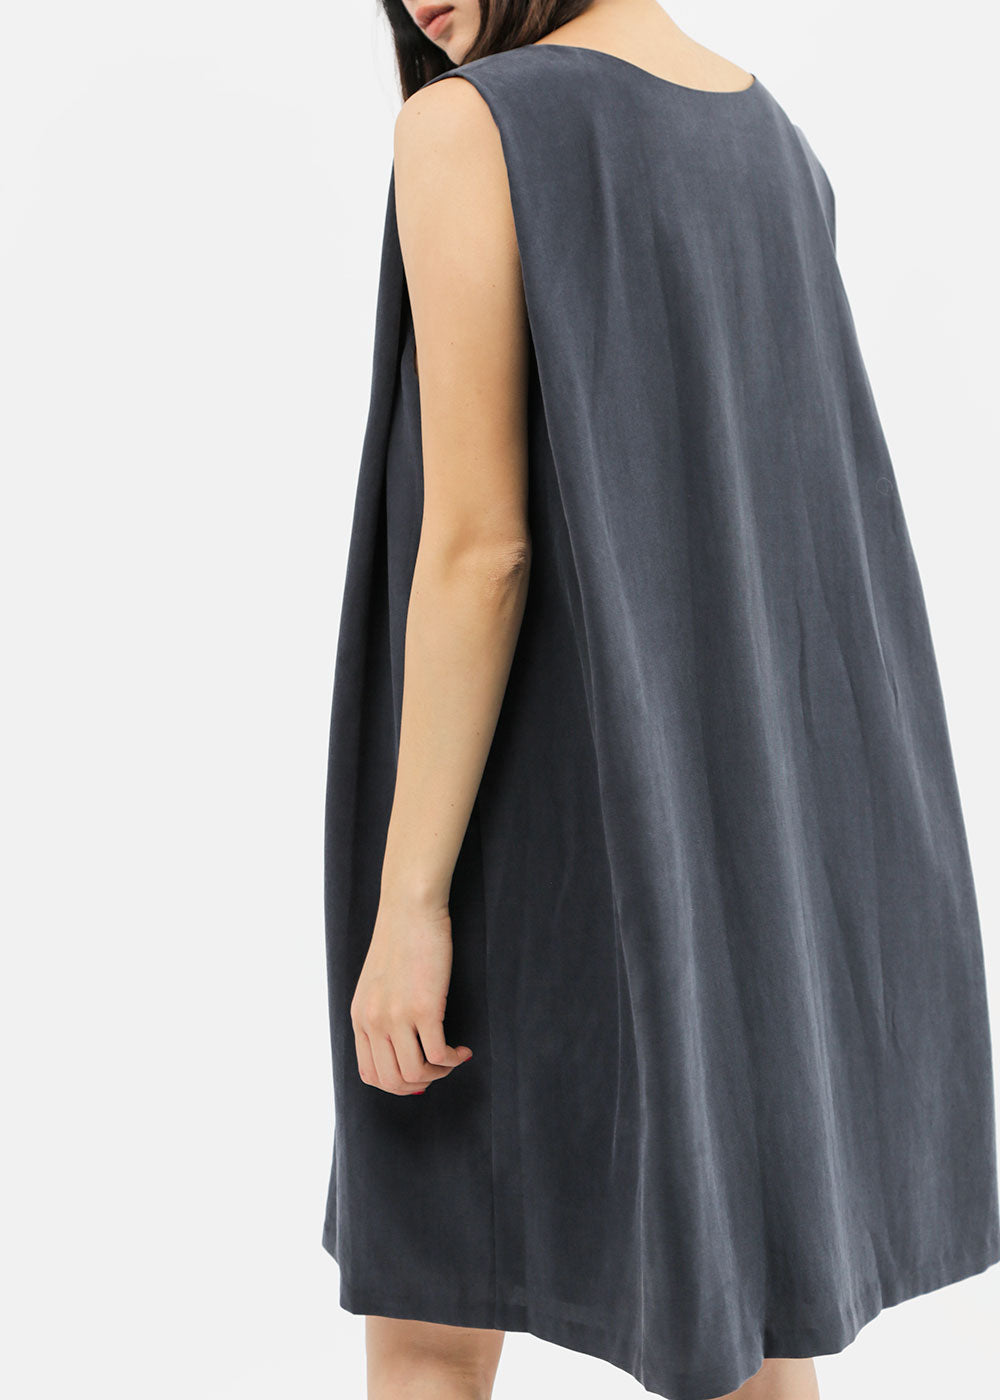 Kaarem Clouds Side Pleated Mini Dress — Shop sustainable fashion and slow fashion at New Classics Studios